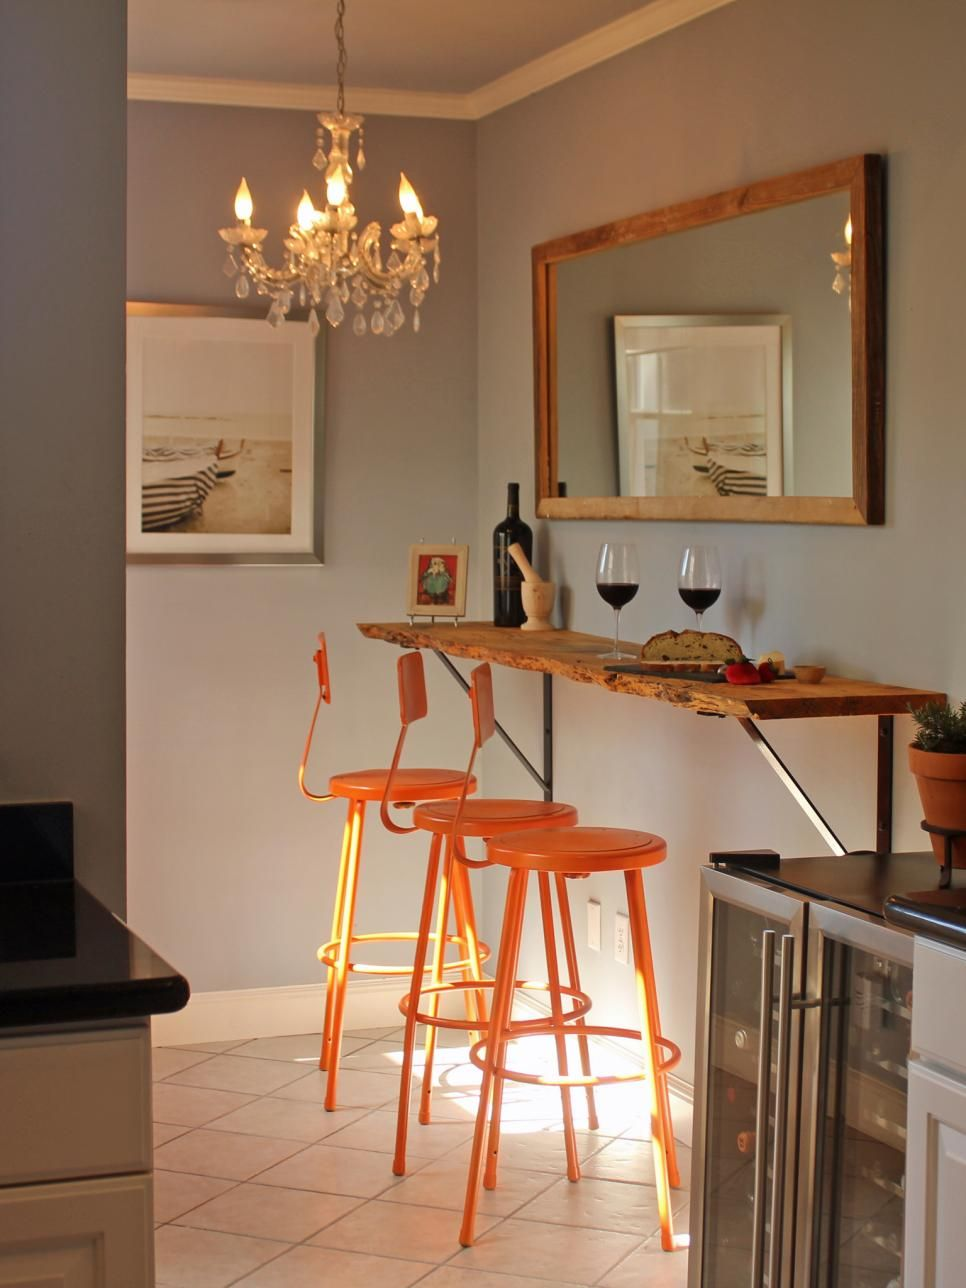 20 Tips For Turning Your Small Kitchen Into An Eatin Kitchen Amusing Small Kitchen Interior Design Images 2018